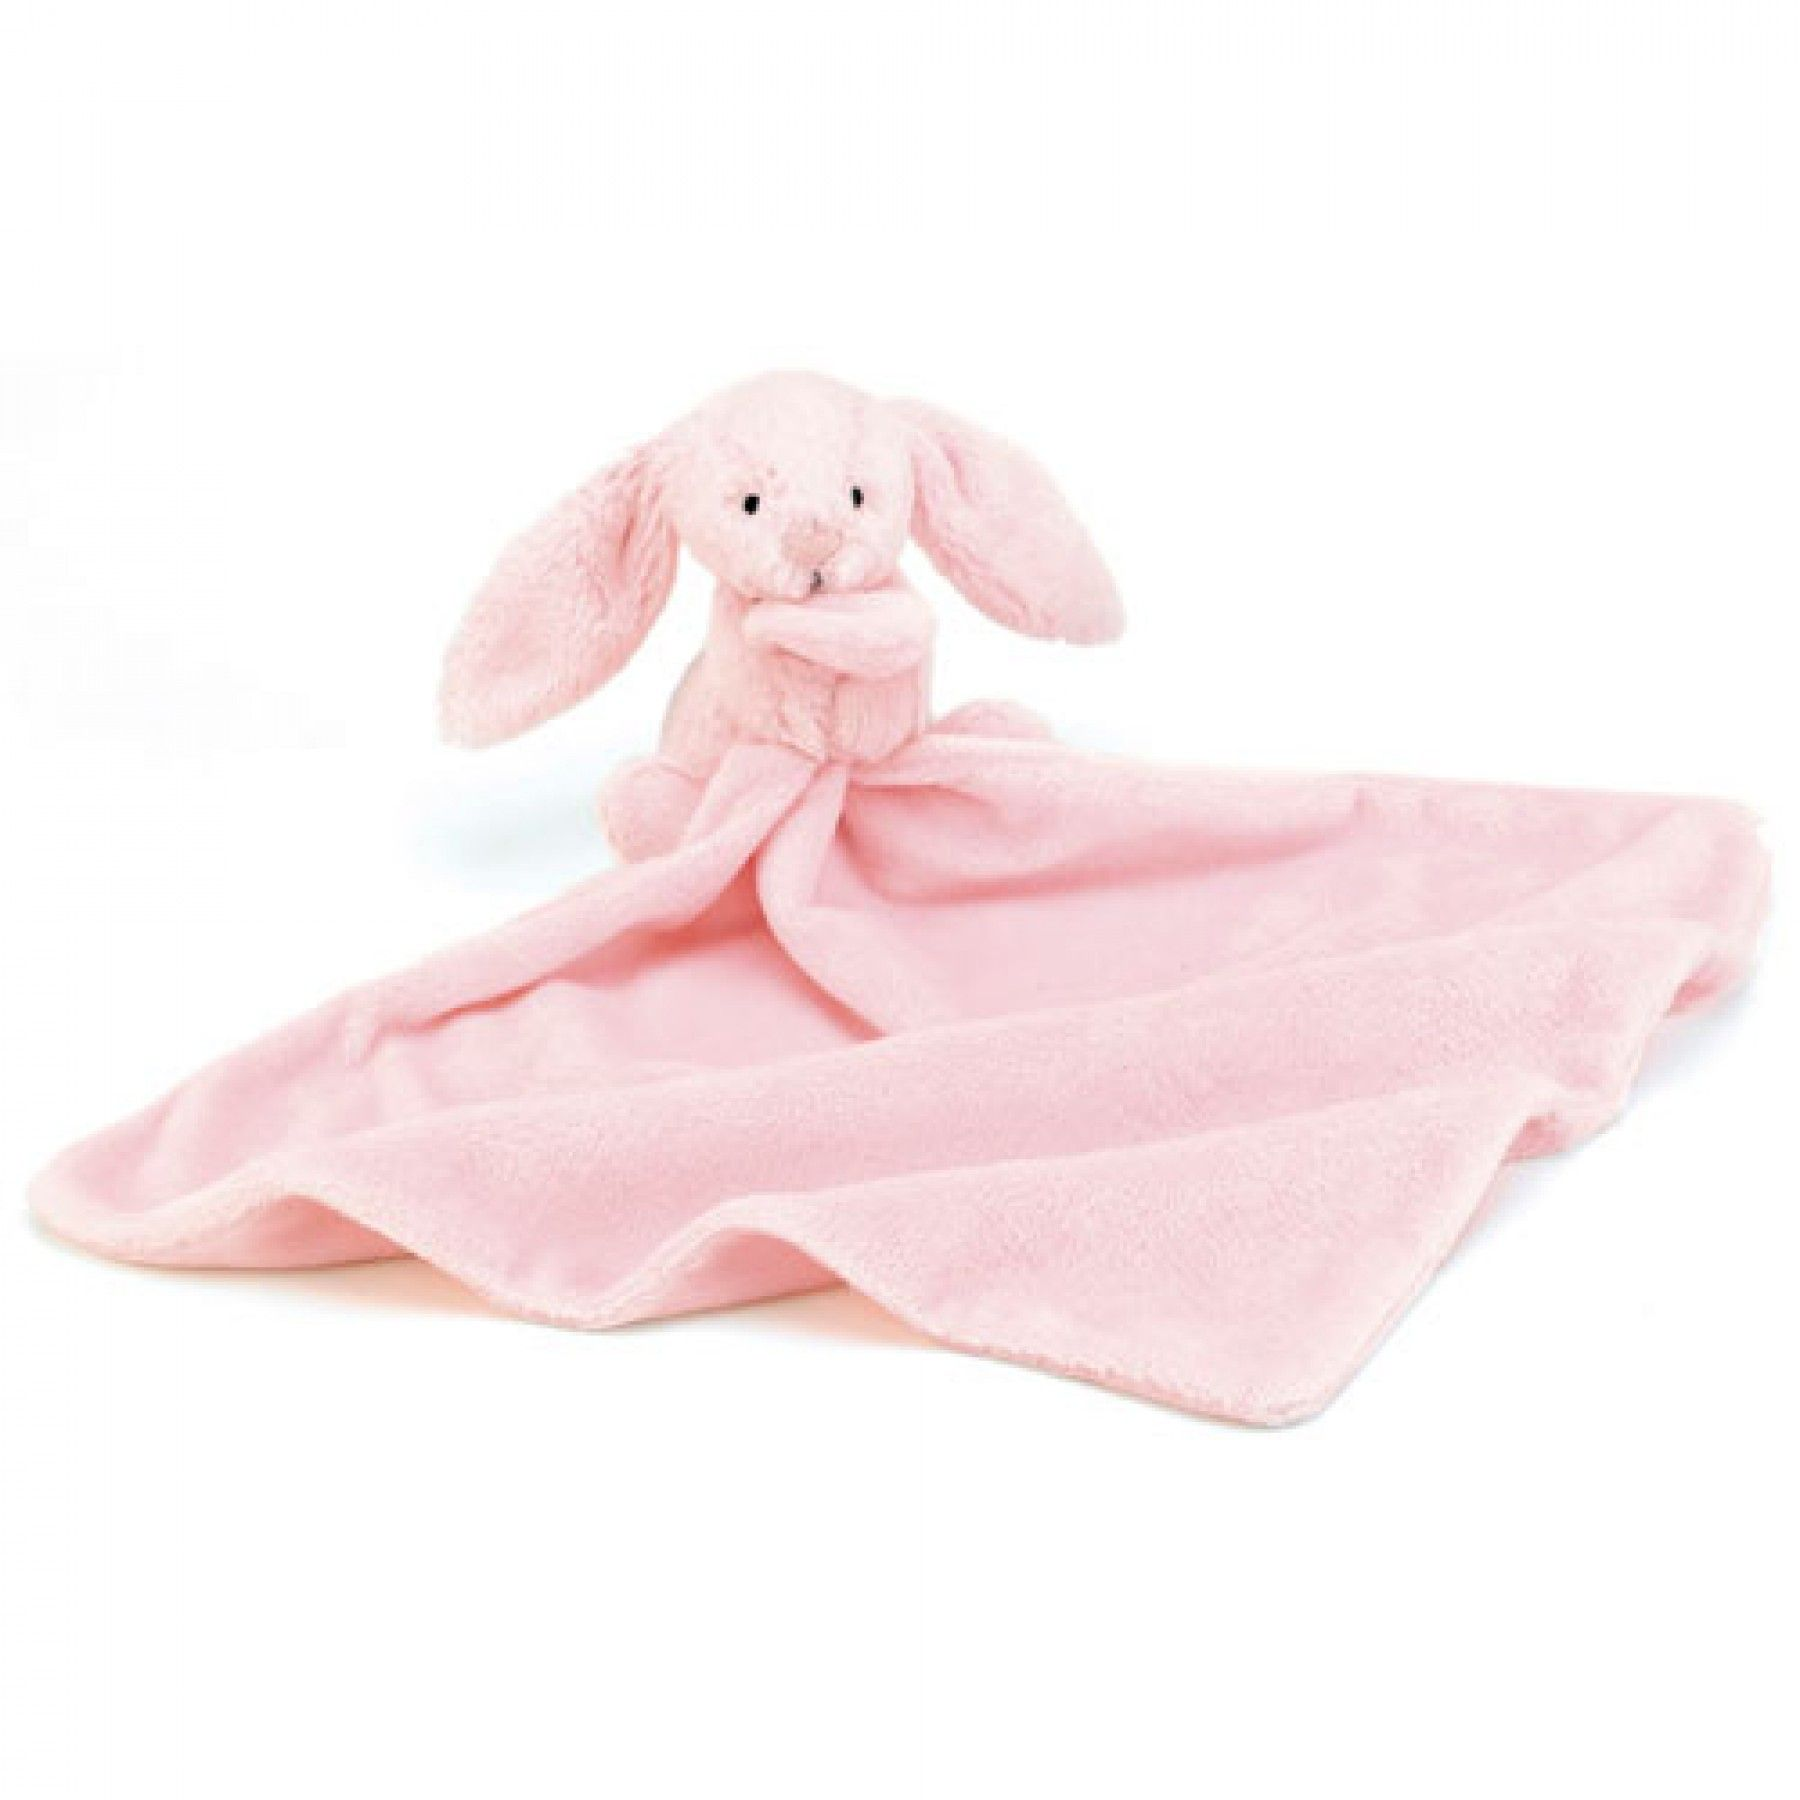 bashful pink bunny soother | jellycat